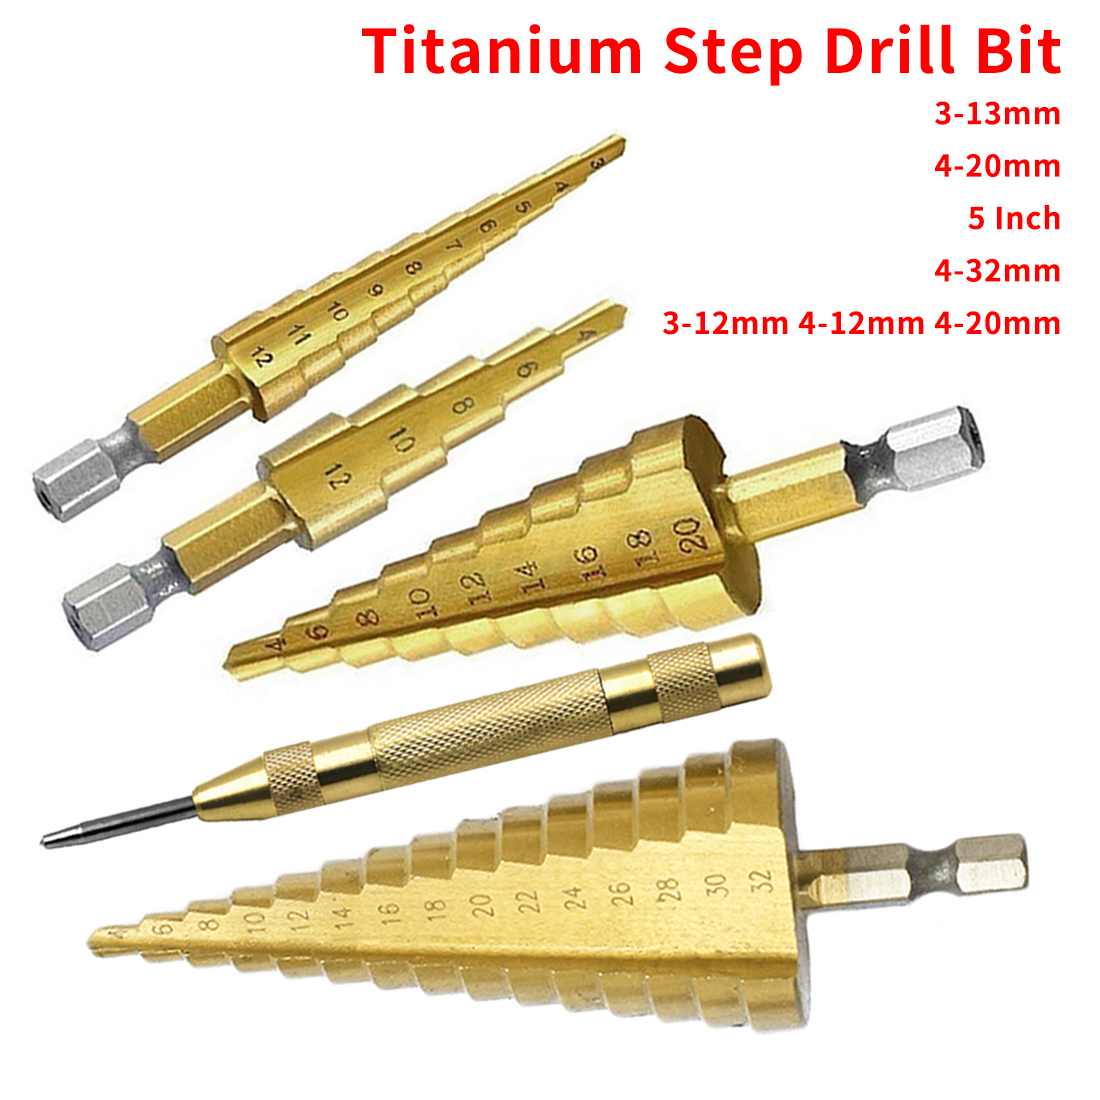 Step Drill Bit 3-12mm 4-12mm 4-20mm HSS Titanium Steel Woodworking Metal Drilling Set Hex Shank Step Cone Cutting Tools